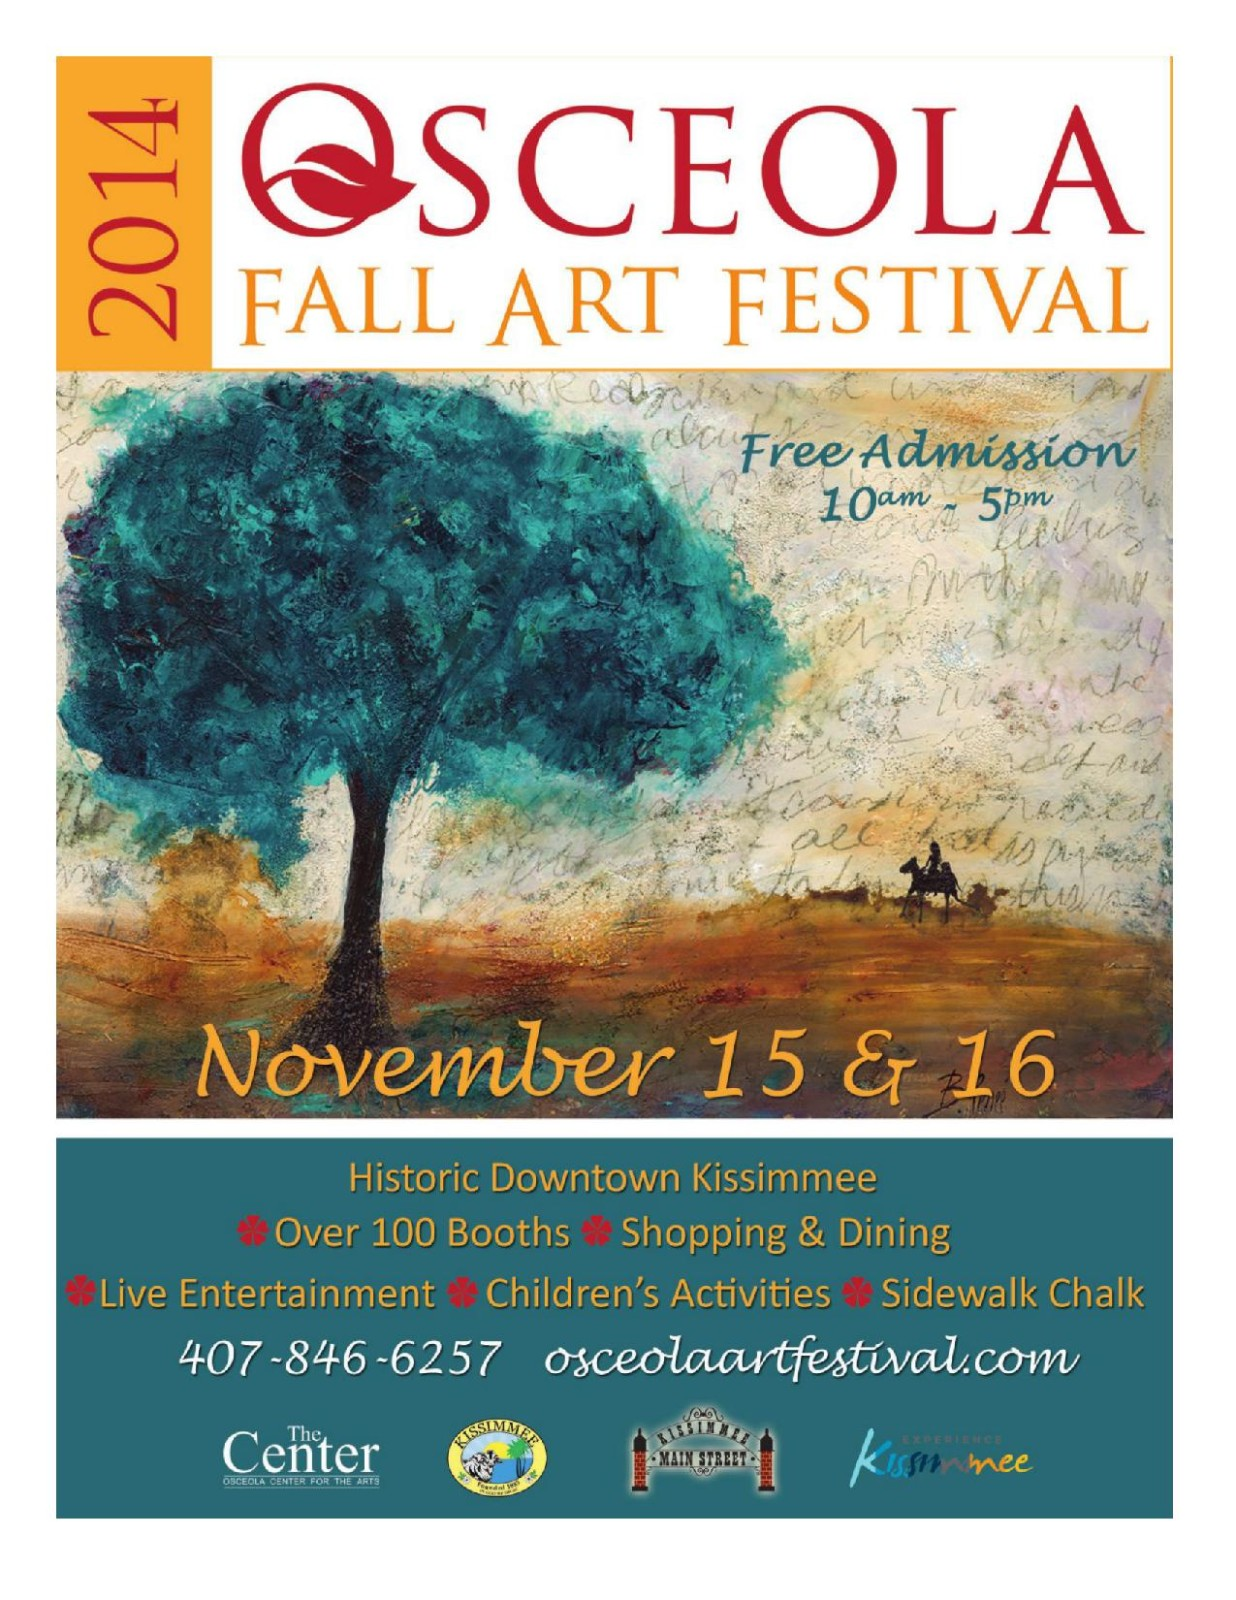 2014 Osceola Fall Art Festival